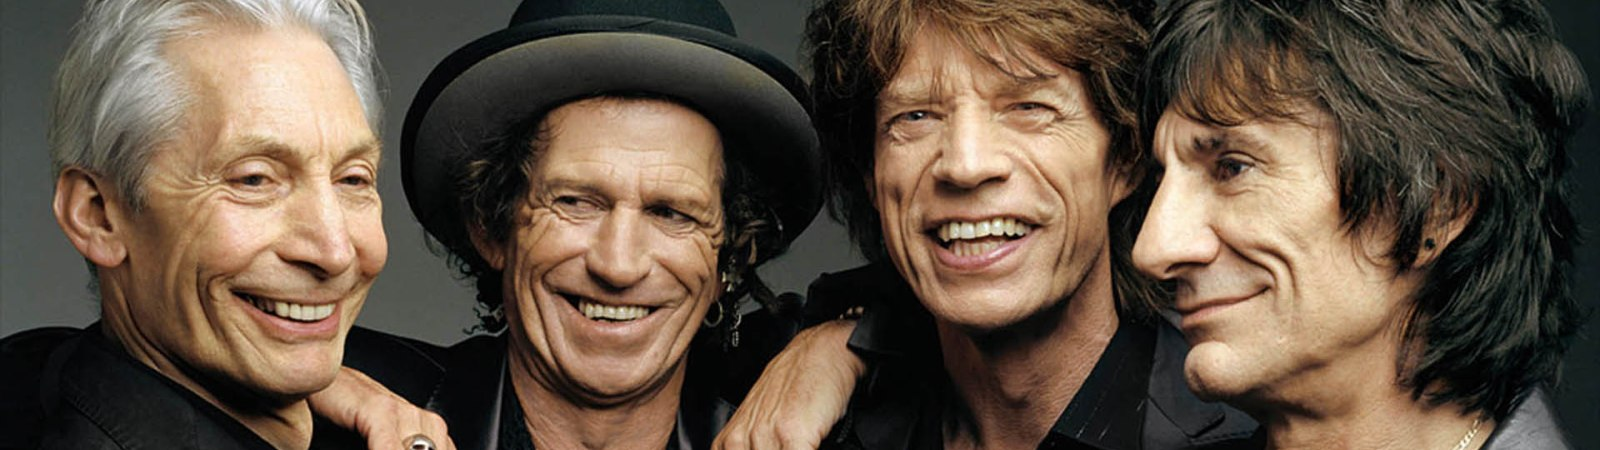 The Rolling Stones 04